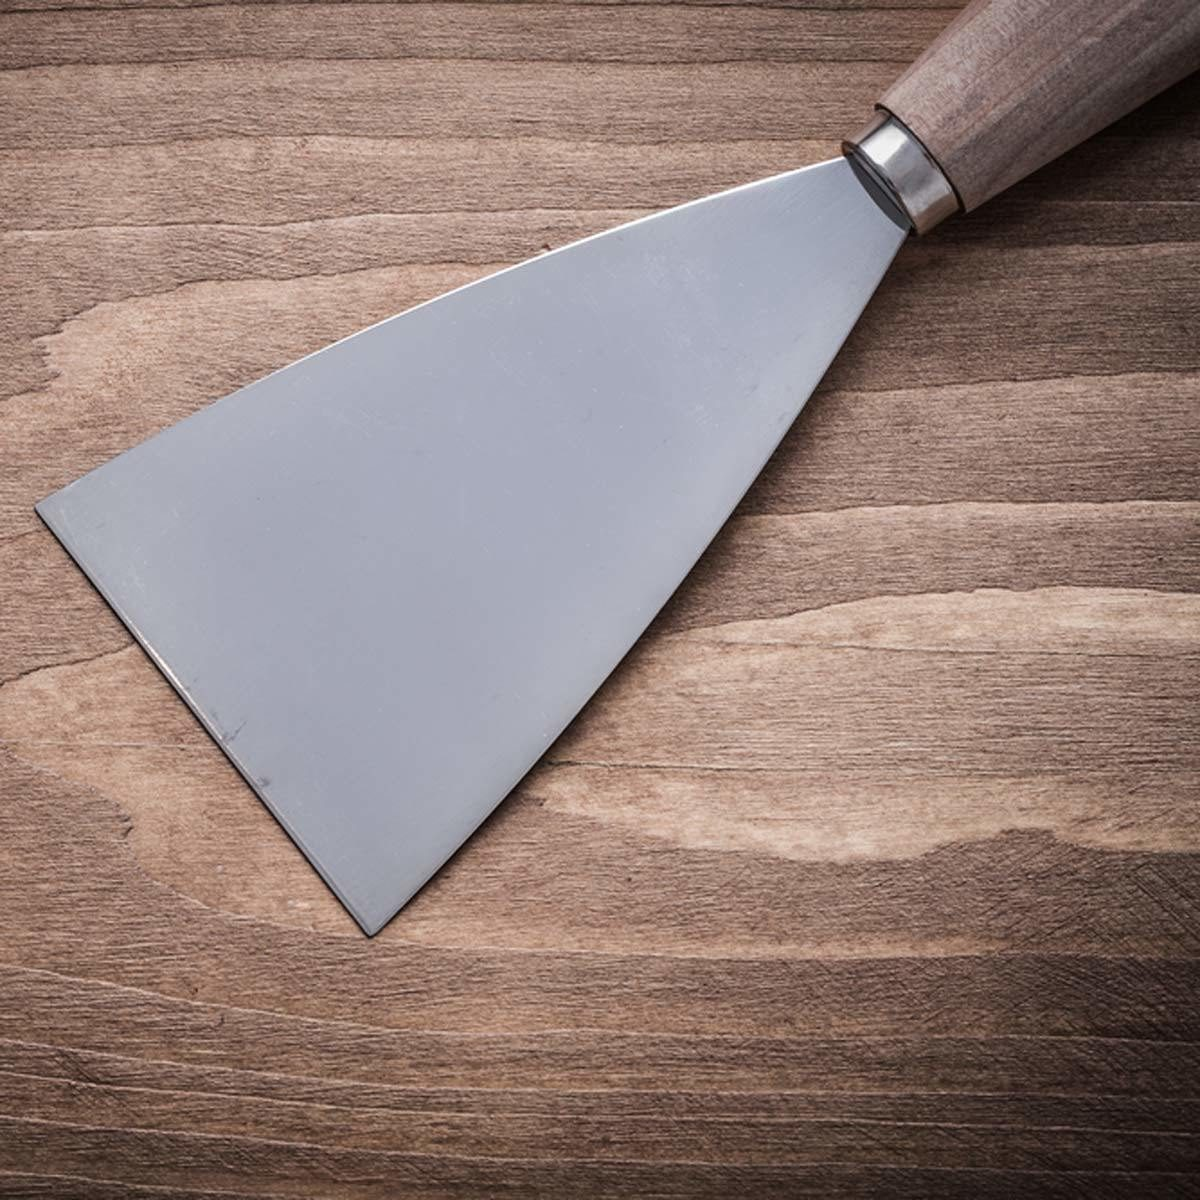 spackle knife or a spatula